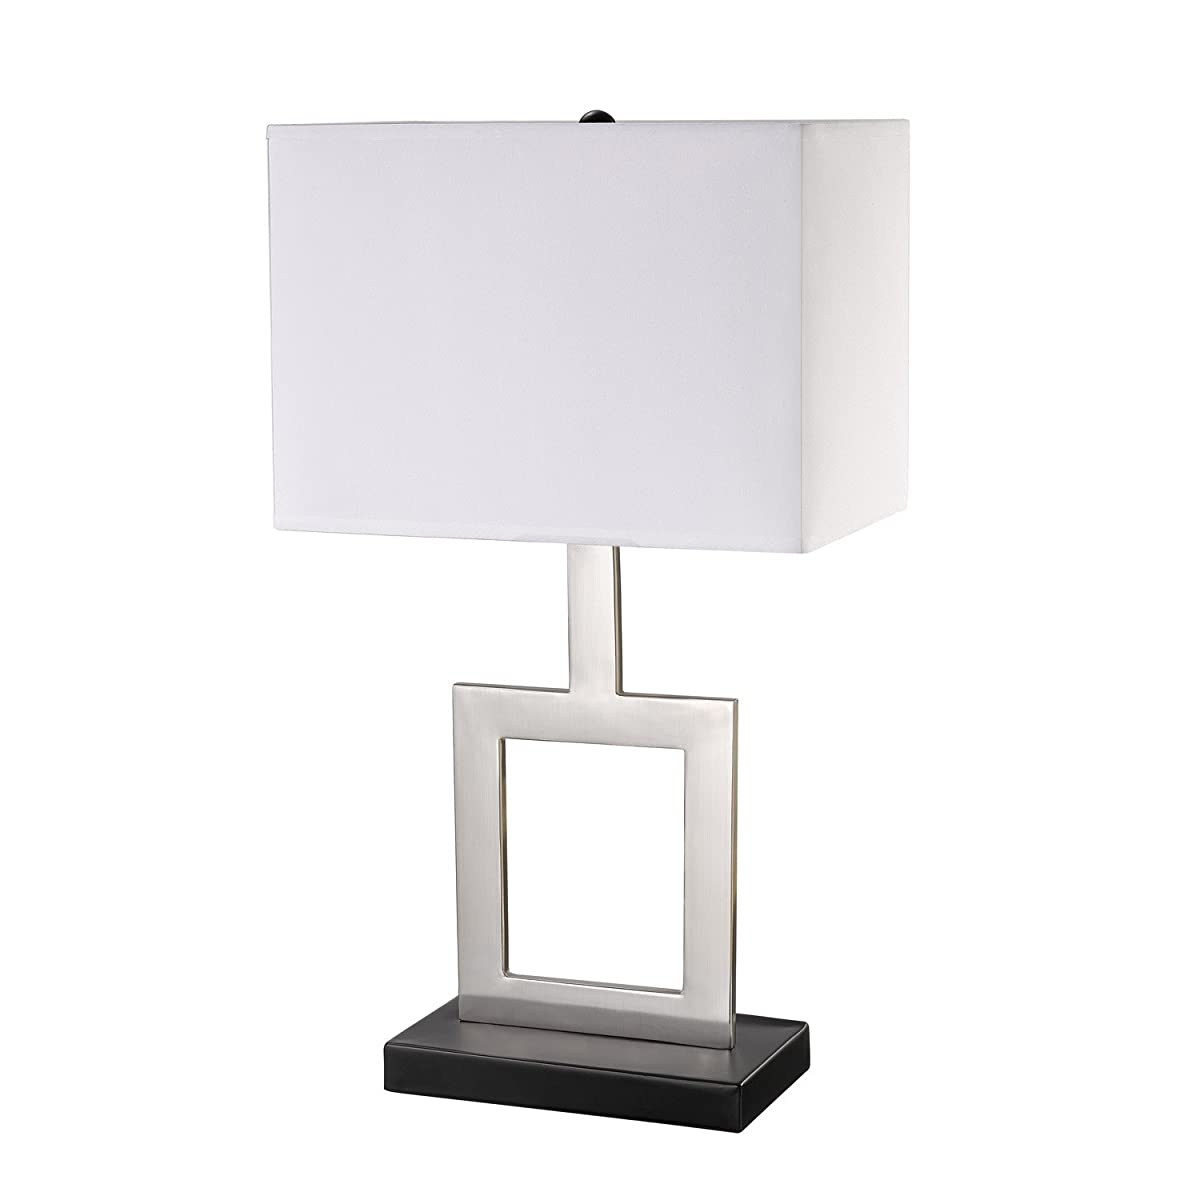 "Globe Electric 11388 Table Lamp, 21"", Brushed Nickel"